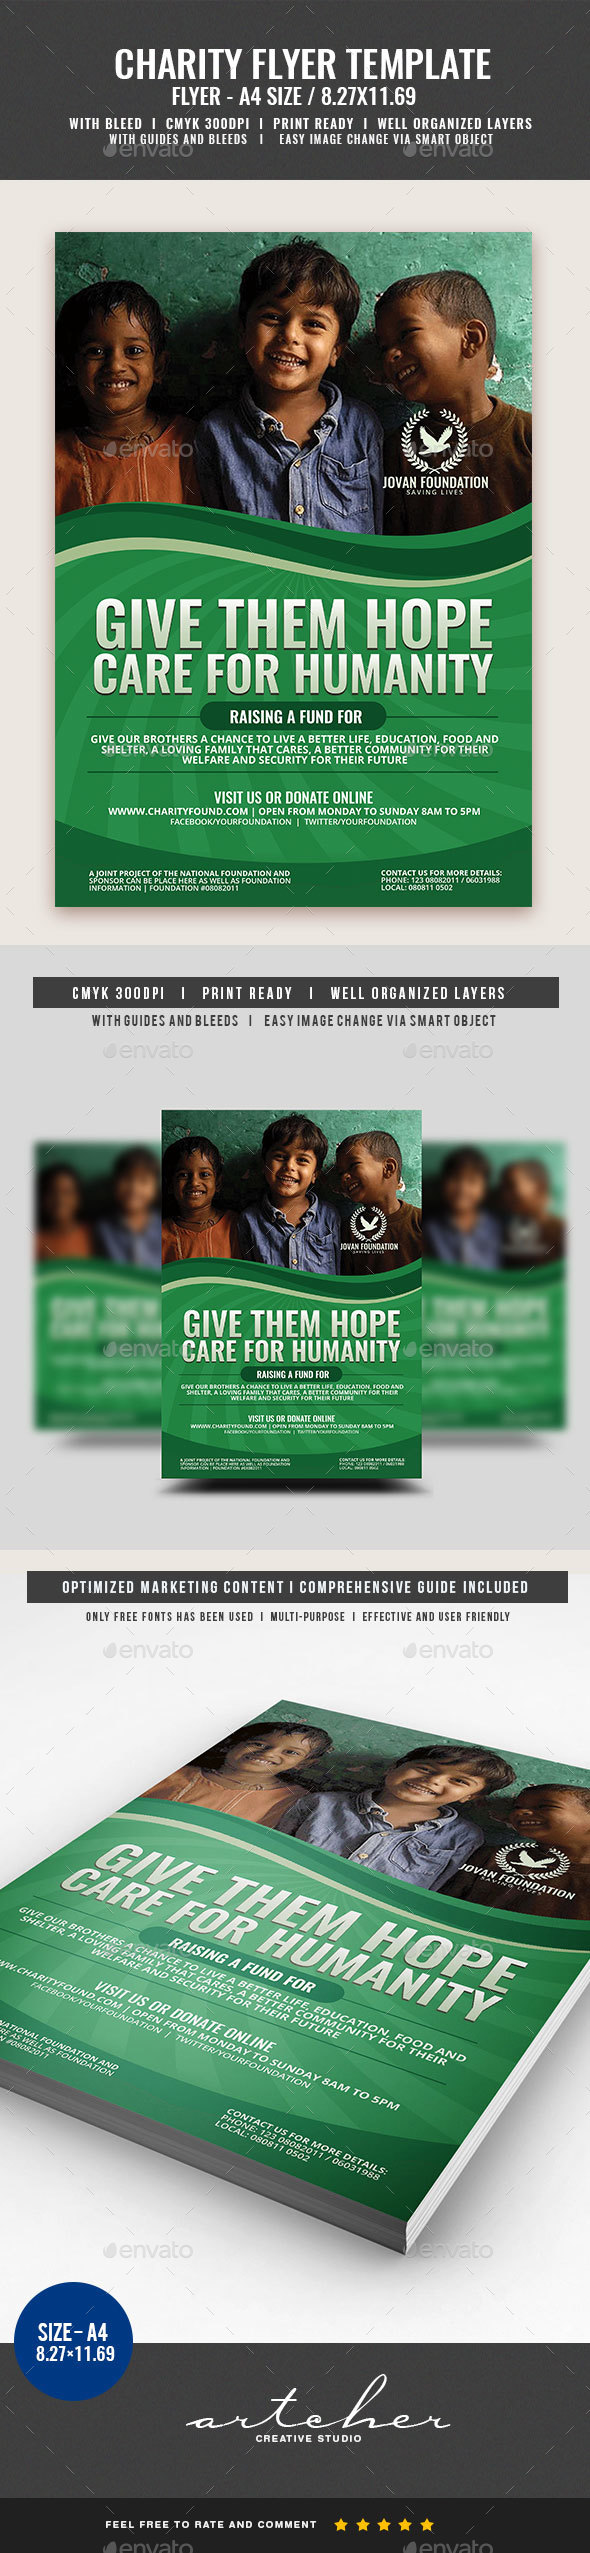 Charity Foundation Flyer - Flyers Print Templates